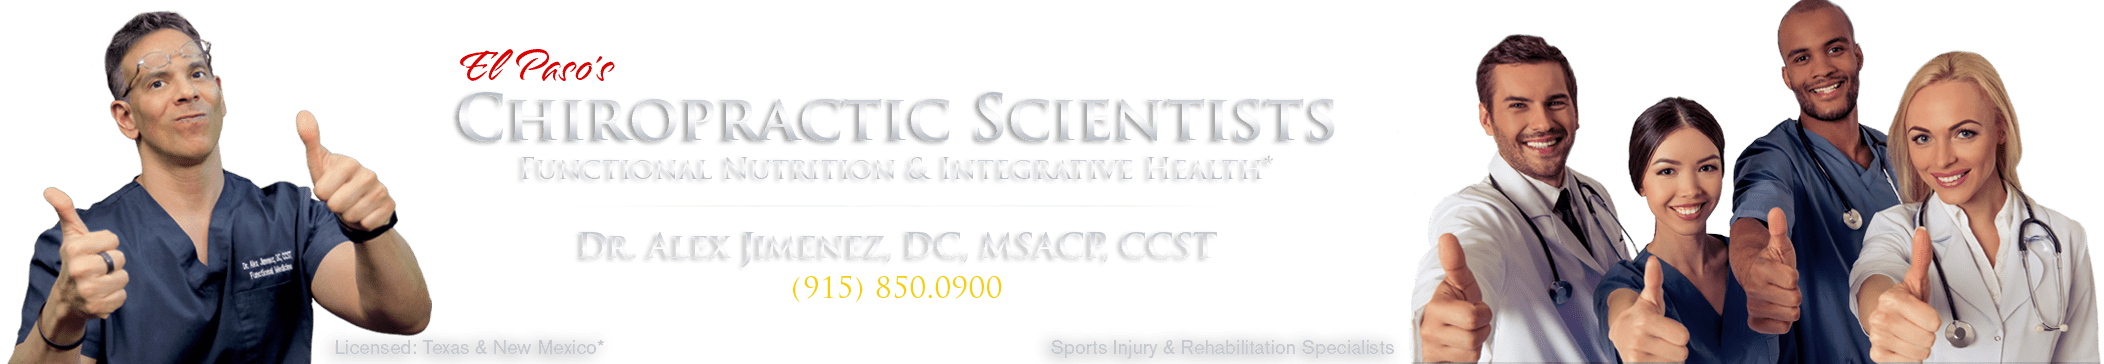 Chiropractic Scientists • 915-850-0900